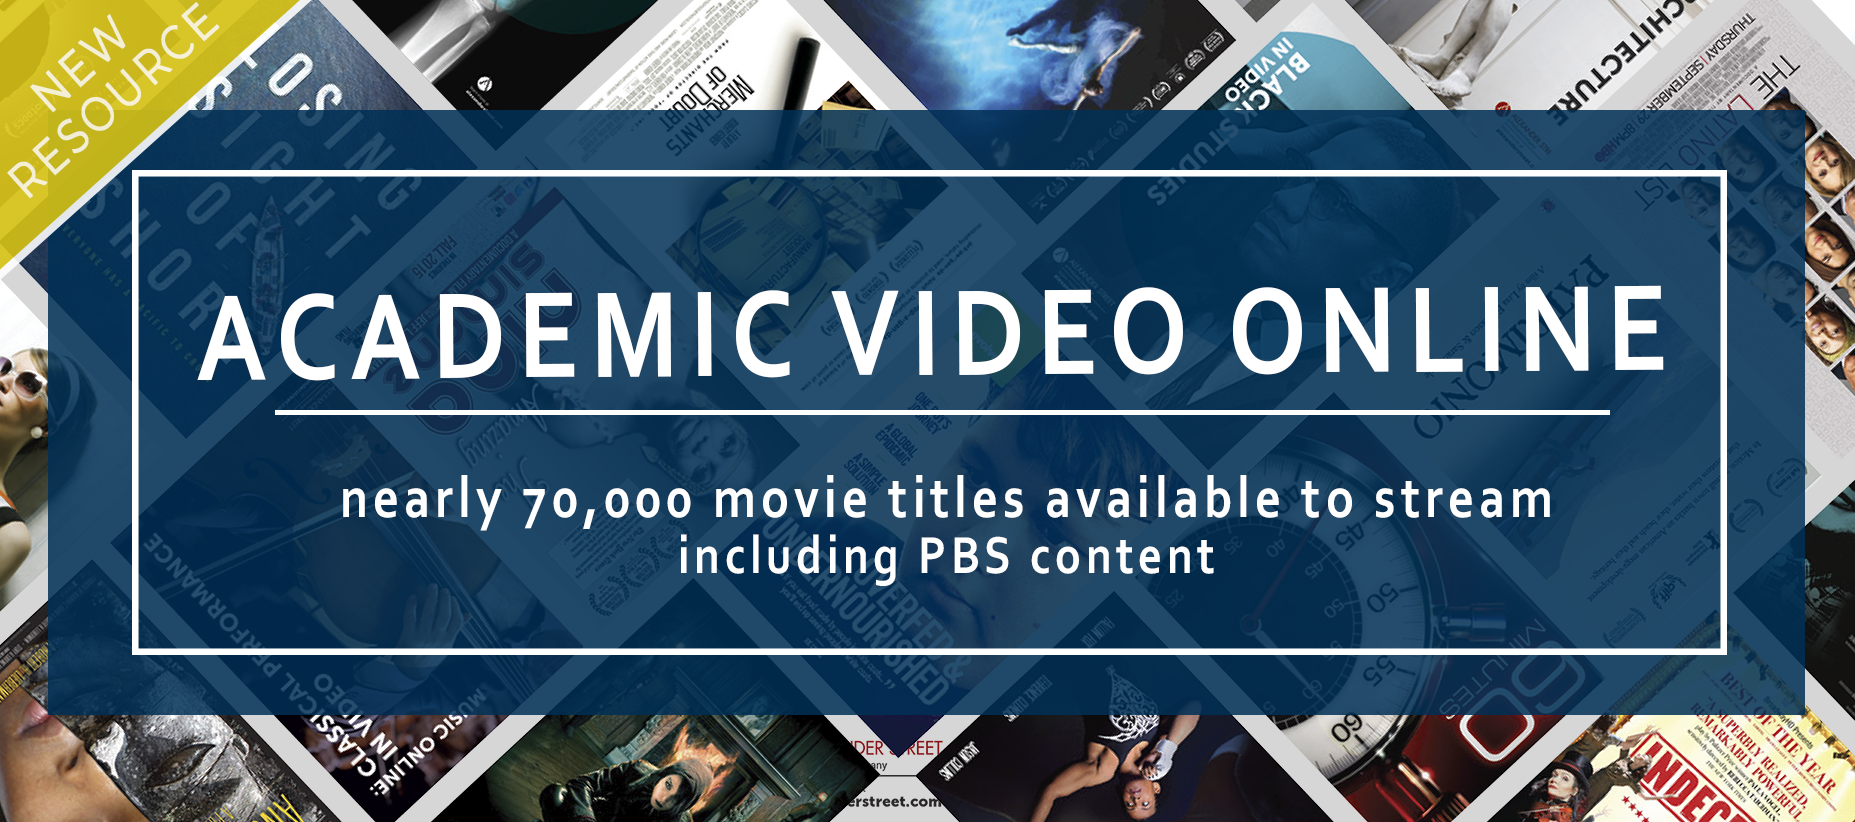 Ad for new Academic Video Online, with almost 70,000 titles available to stream